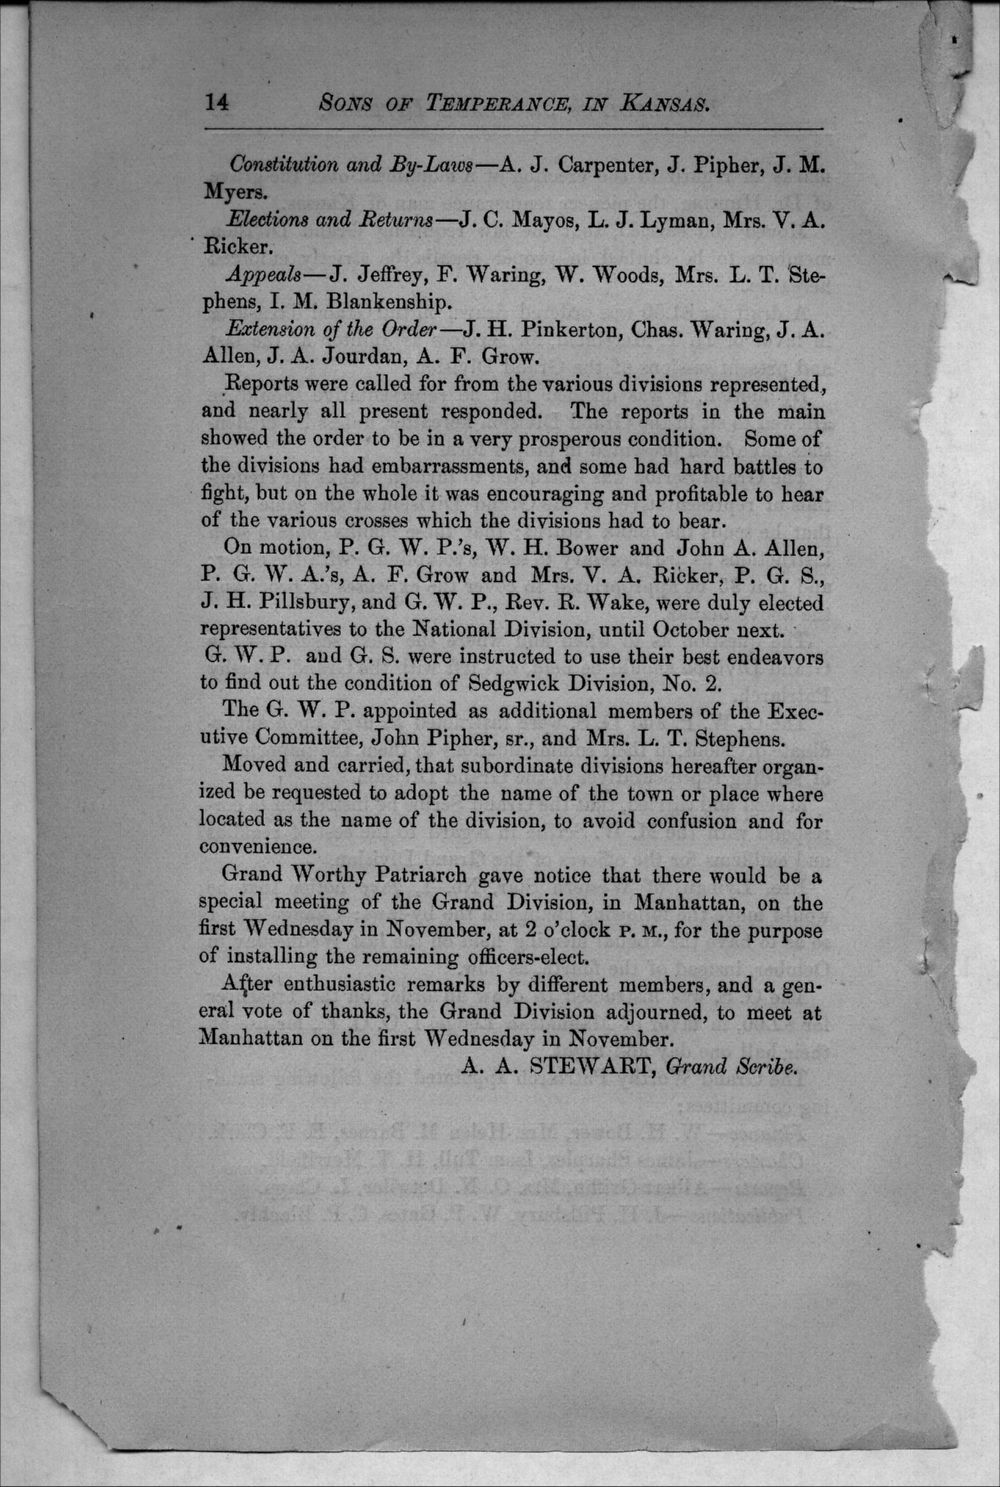 Journal of proceedings of the Grand Division of the Sons of Temperance of Kansas - 14